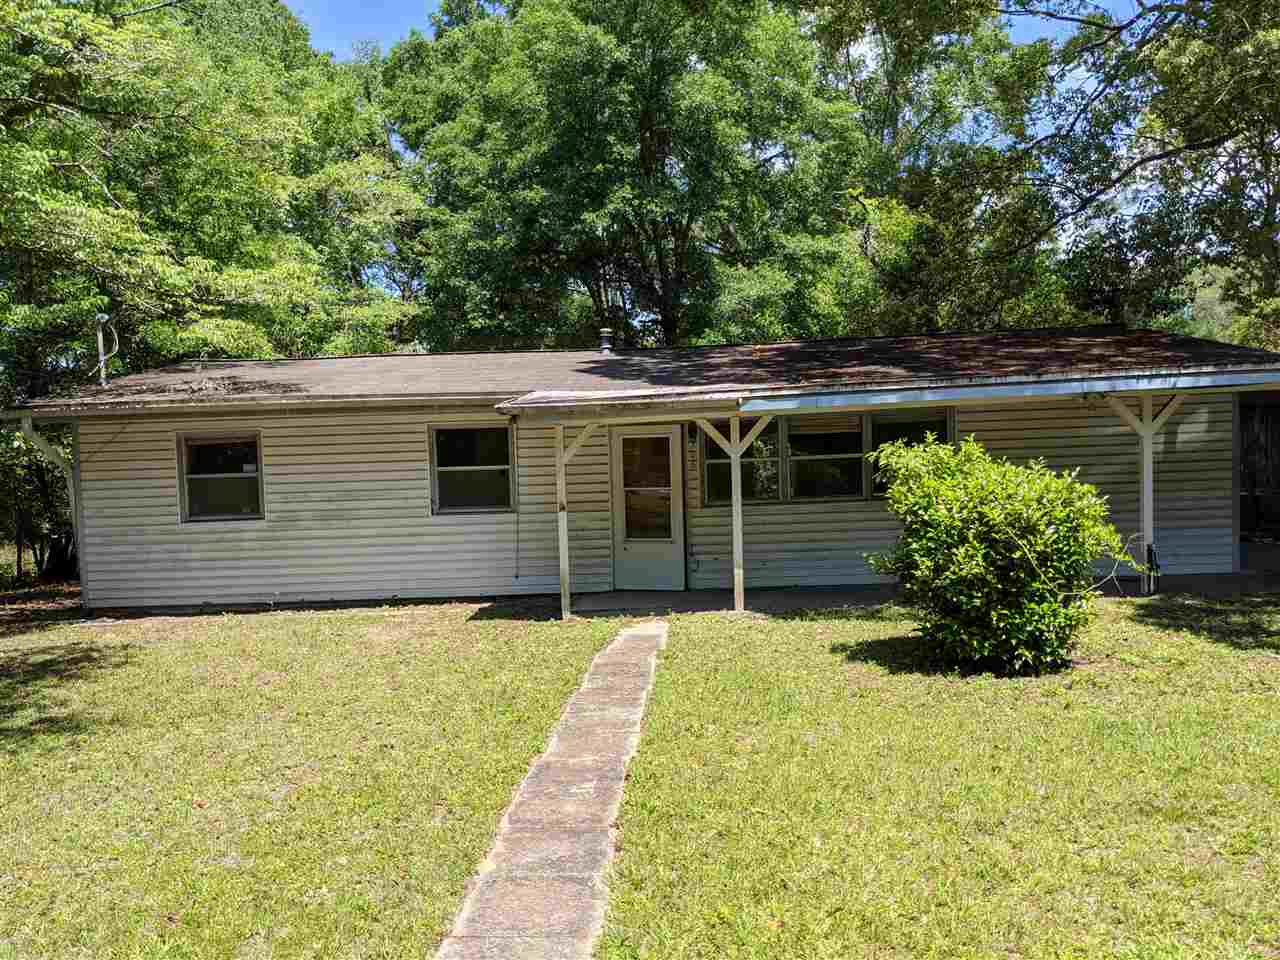 INVESTOR SPECIAL. 2011 Roof, updated electrical, updated plumbing and new cabinets and counters. Great opportunity for a fixer upper in an established neighborhood on .25 acre lot. Seller makes no warranties or guarantees. Sold AS-IS with right to inspect.   Estimated ARV is $130,000